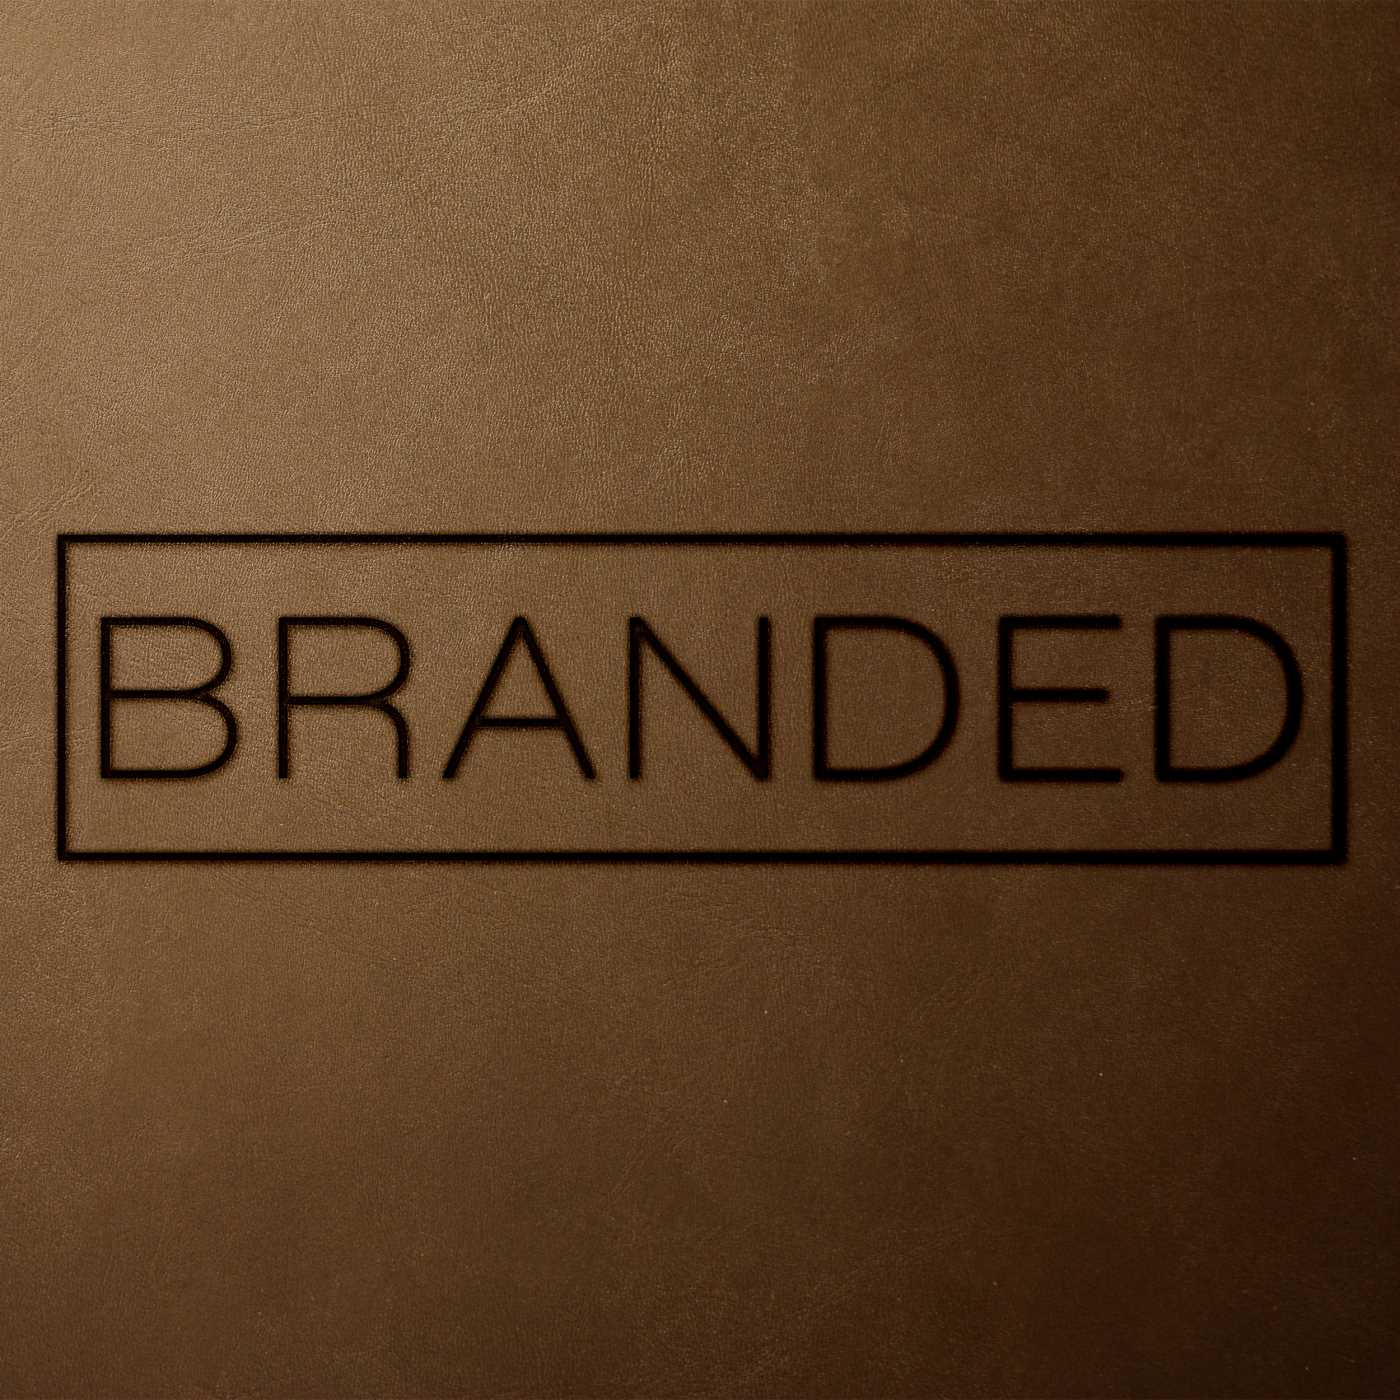 Branded... the podcast brought to you by the crazies at ALL MAVEN. We are about all things branding and so much more! We will talk about SEO, website design, the value of adding video, social media, and of course, branding identity.